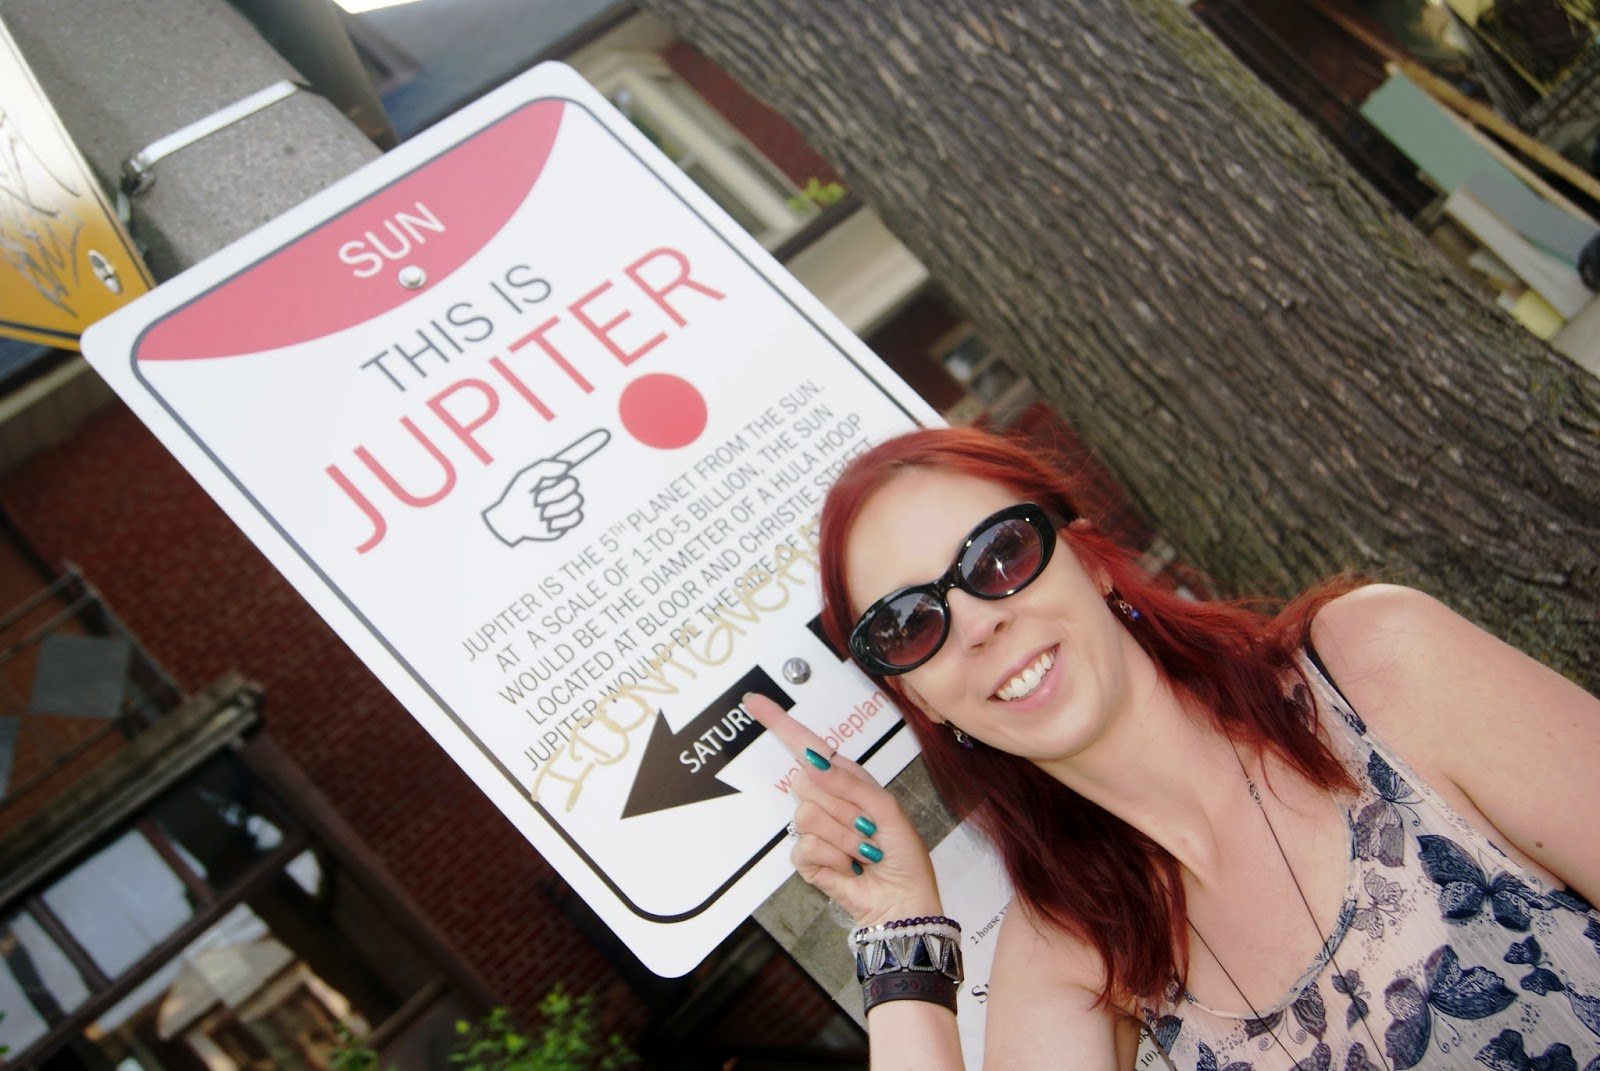 Jupiter Wayfinding Sign from Walkable Planets scale solar system by Jode Roberts in Toronto, Public, Installation, Community, Project, Intervention, Explore, Grace Street, Gore Vale Avenue, Jane's Walk, 100-in1 Day, Ontario, Canada, Culture, Lifestyle, Galaxy, Art, Artist